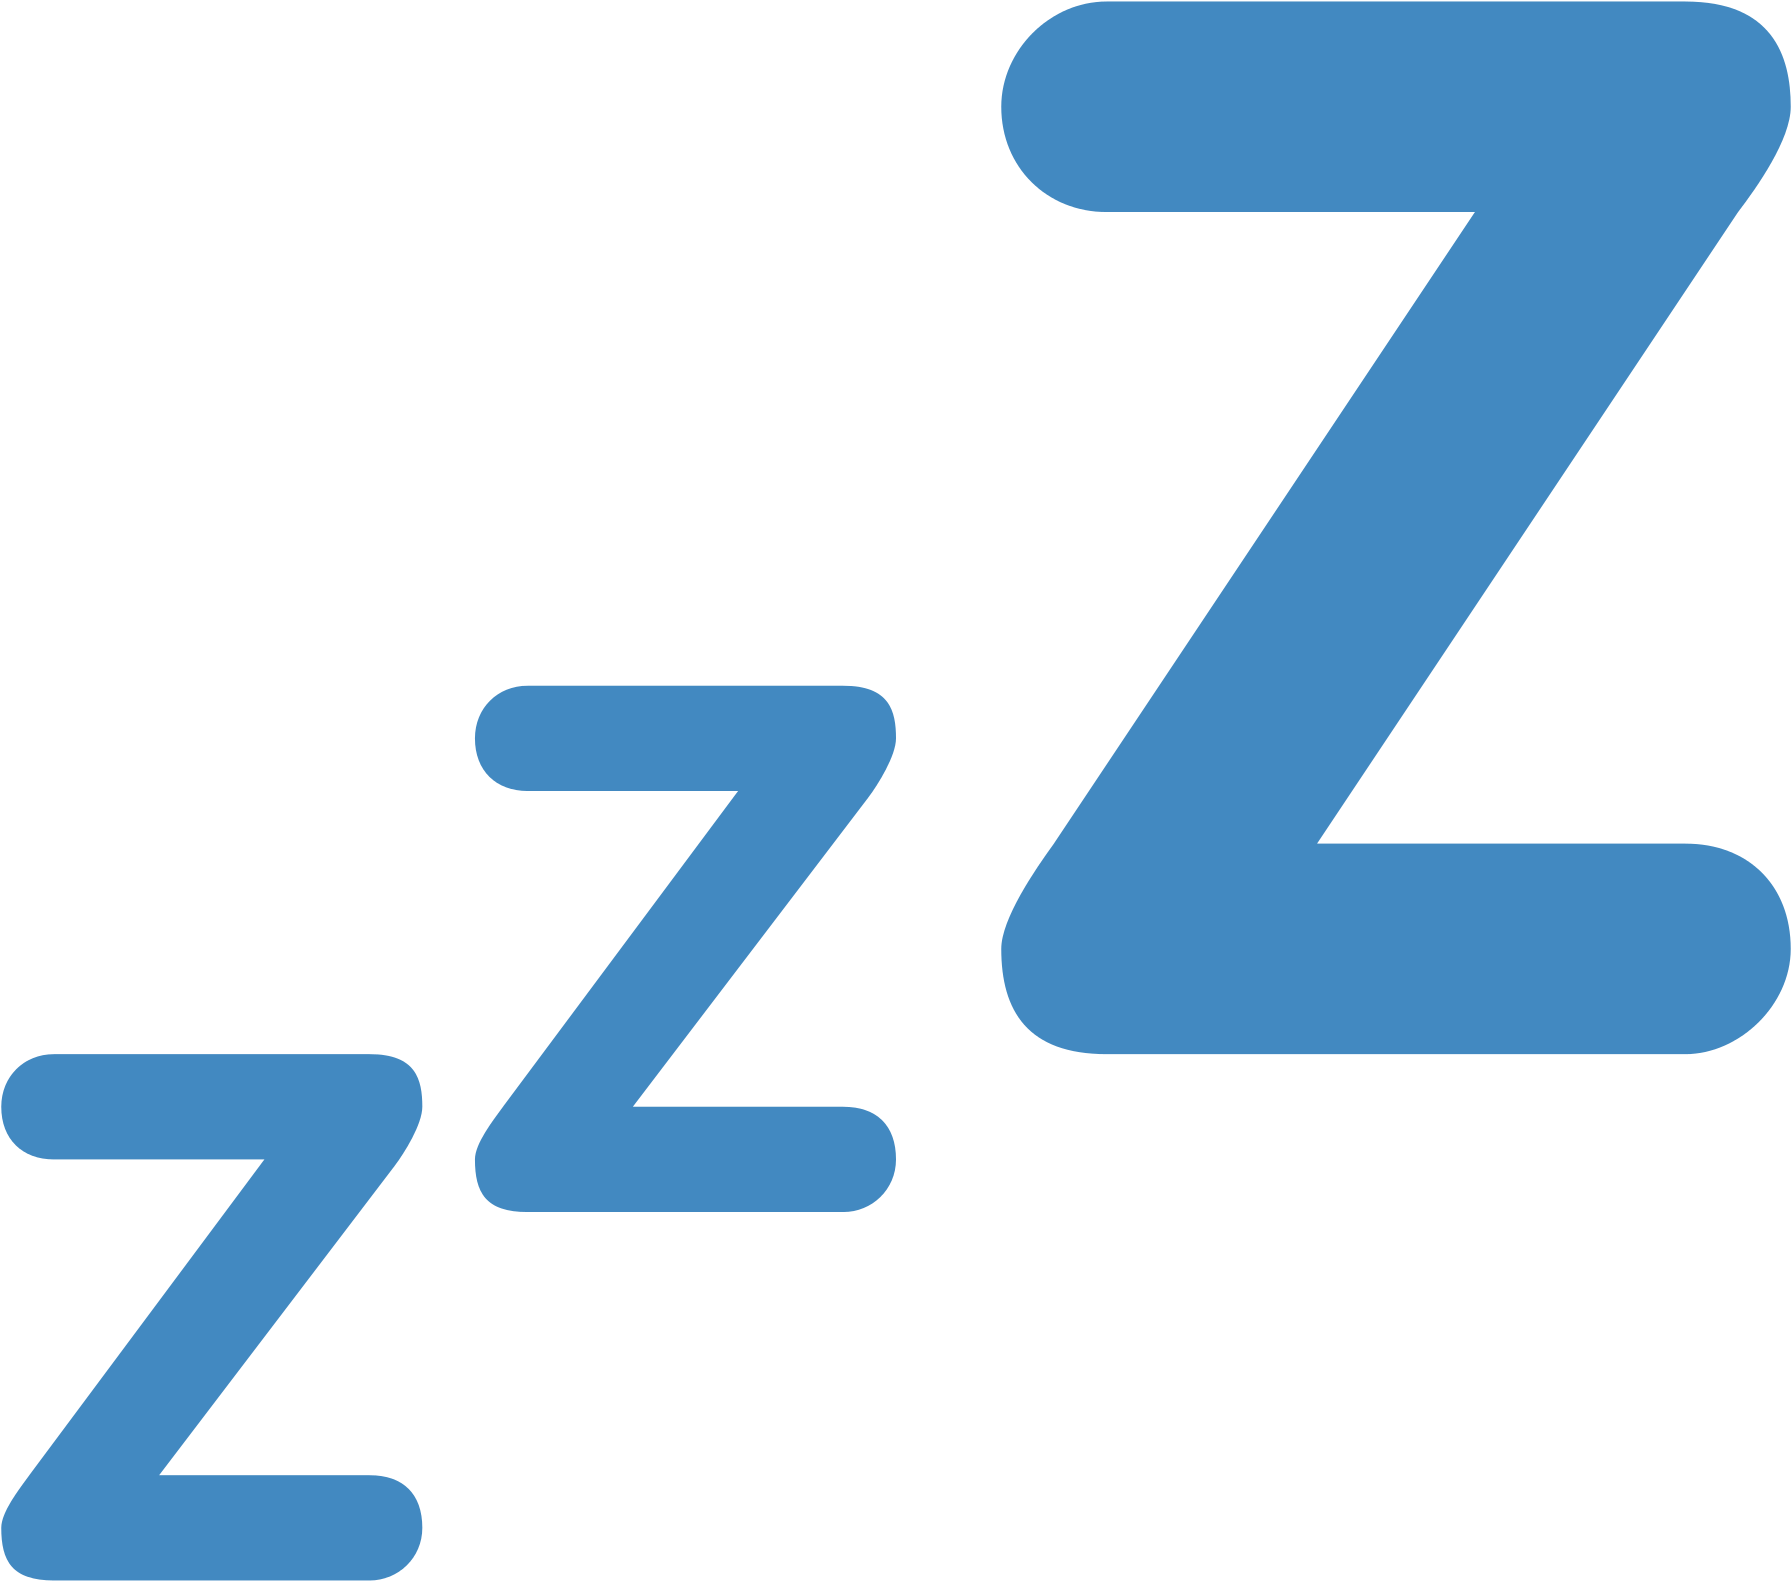 Zzz transparent aesthetic. Download hd graphic black